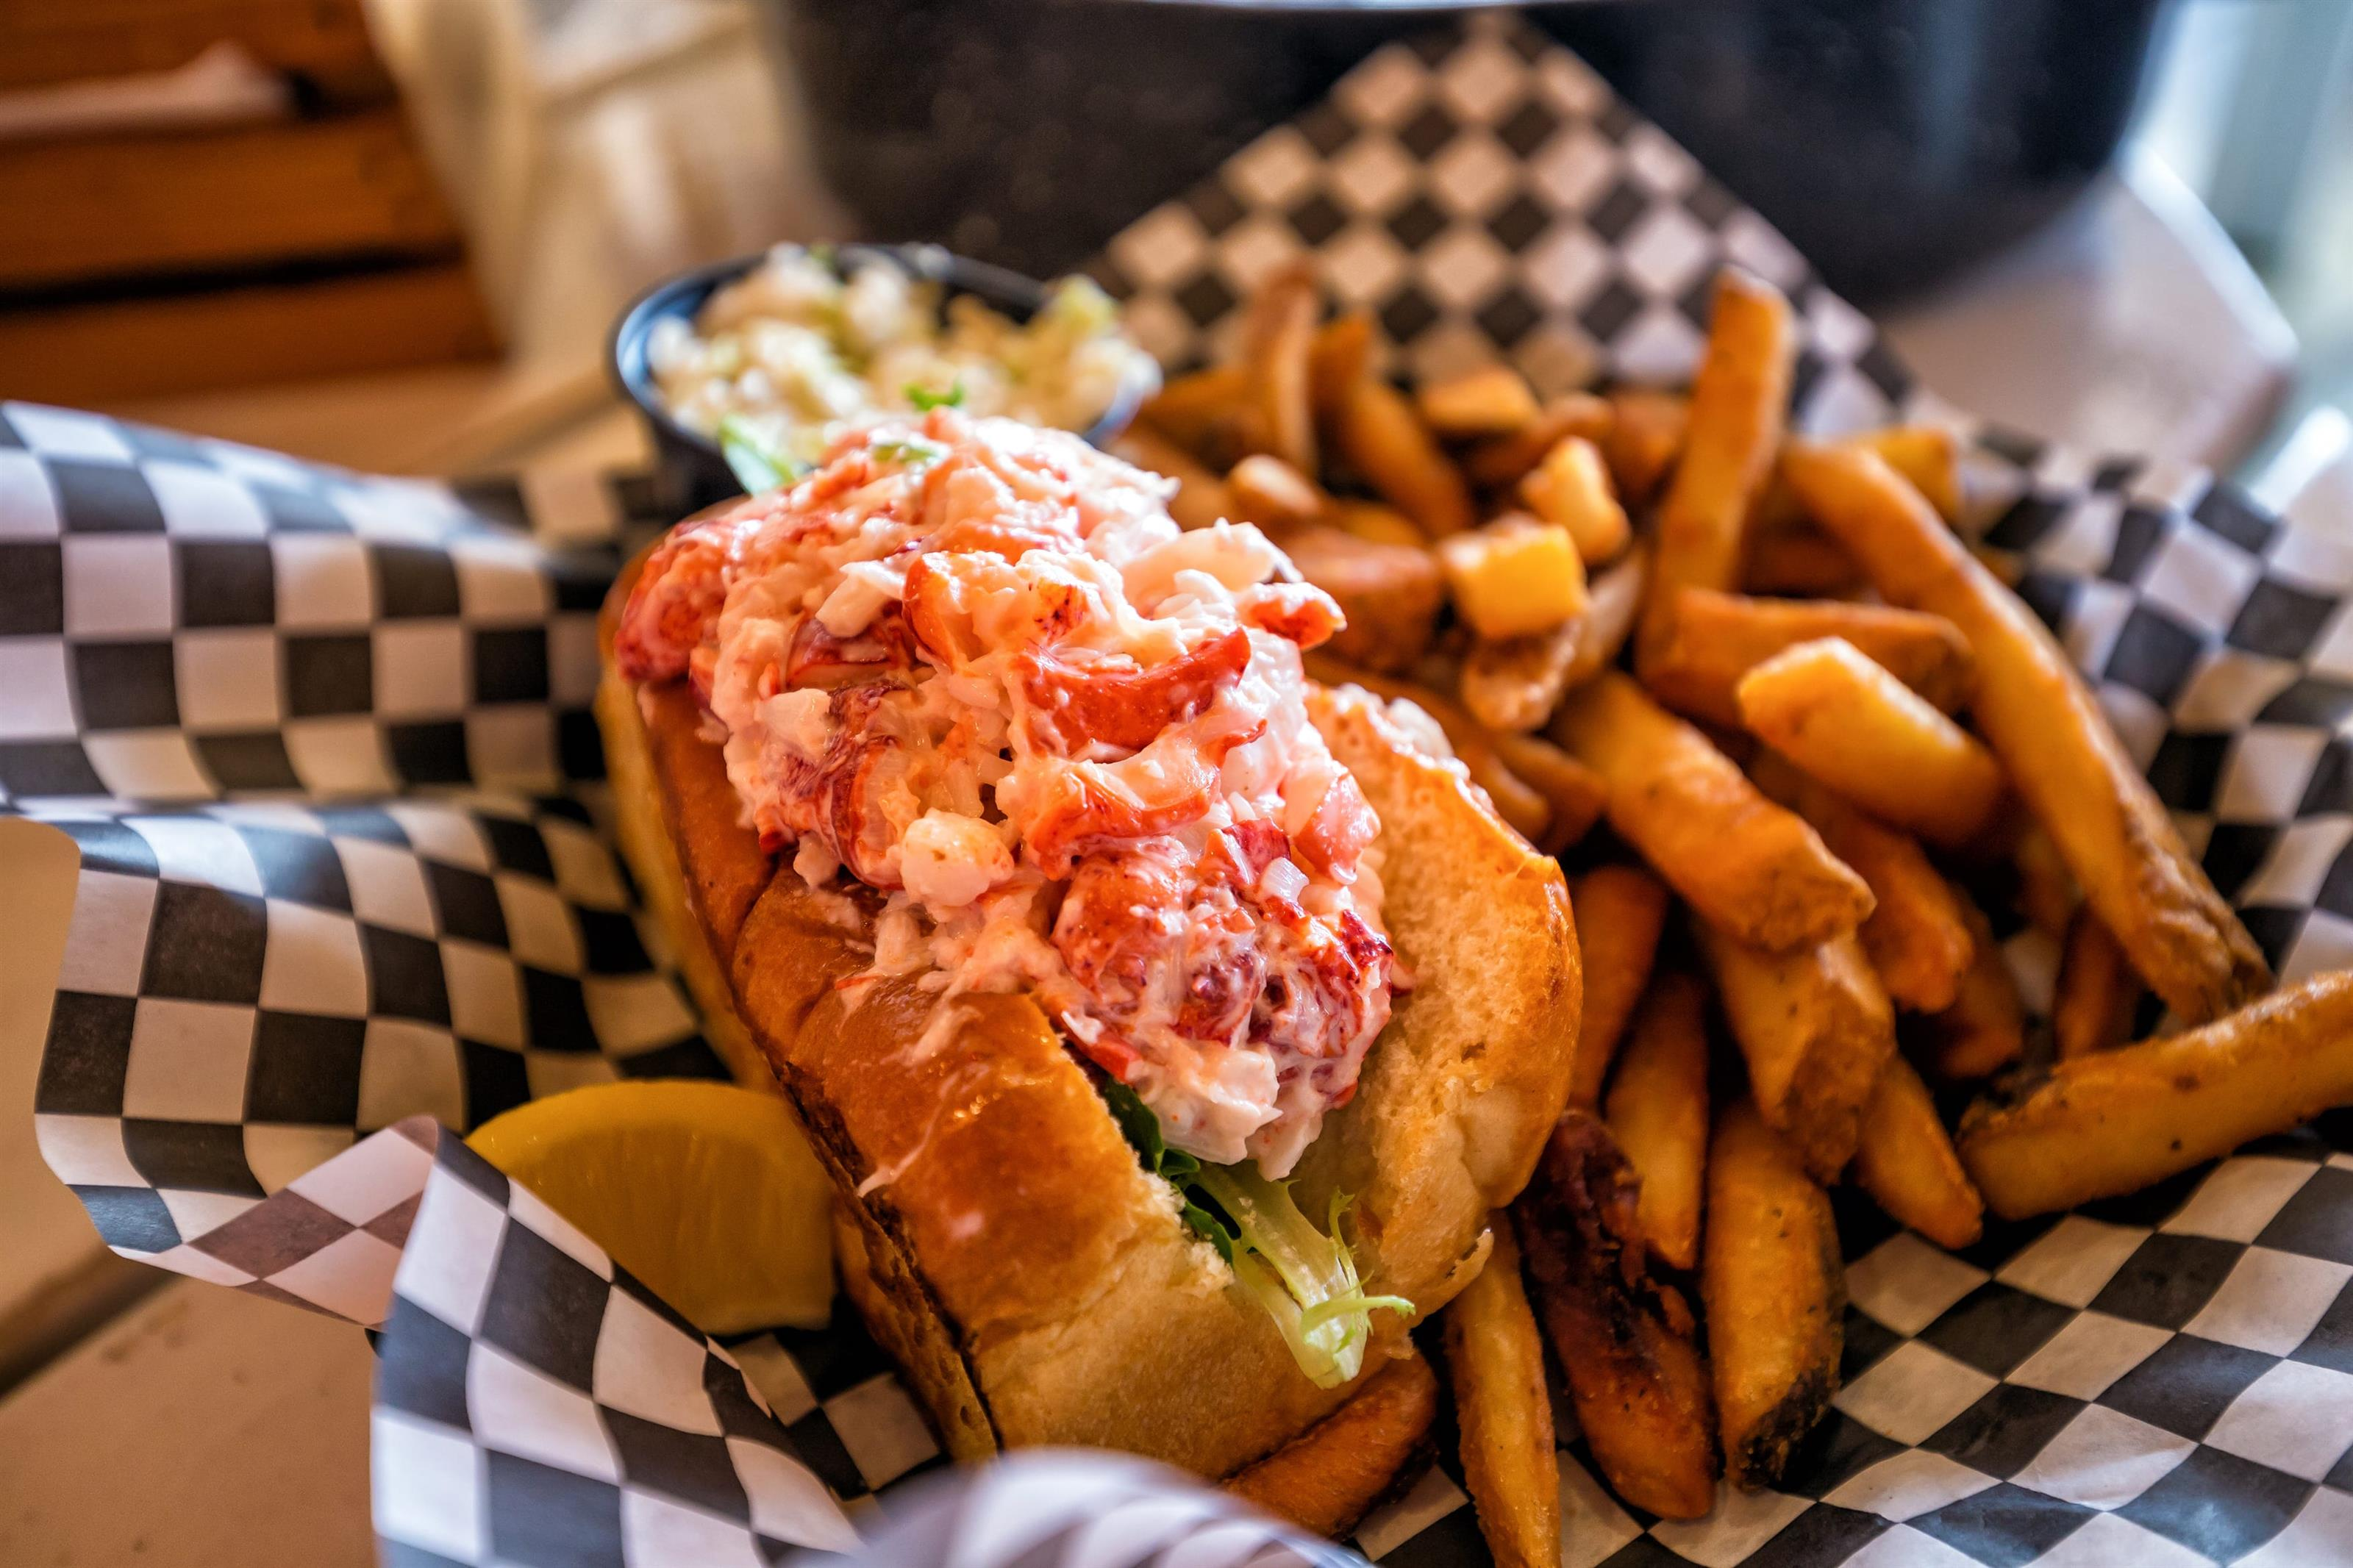 Lobster roll on toasted bun with side of crispy fries